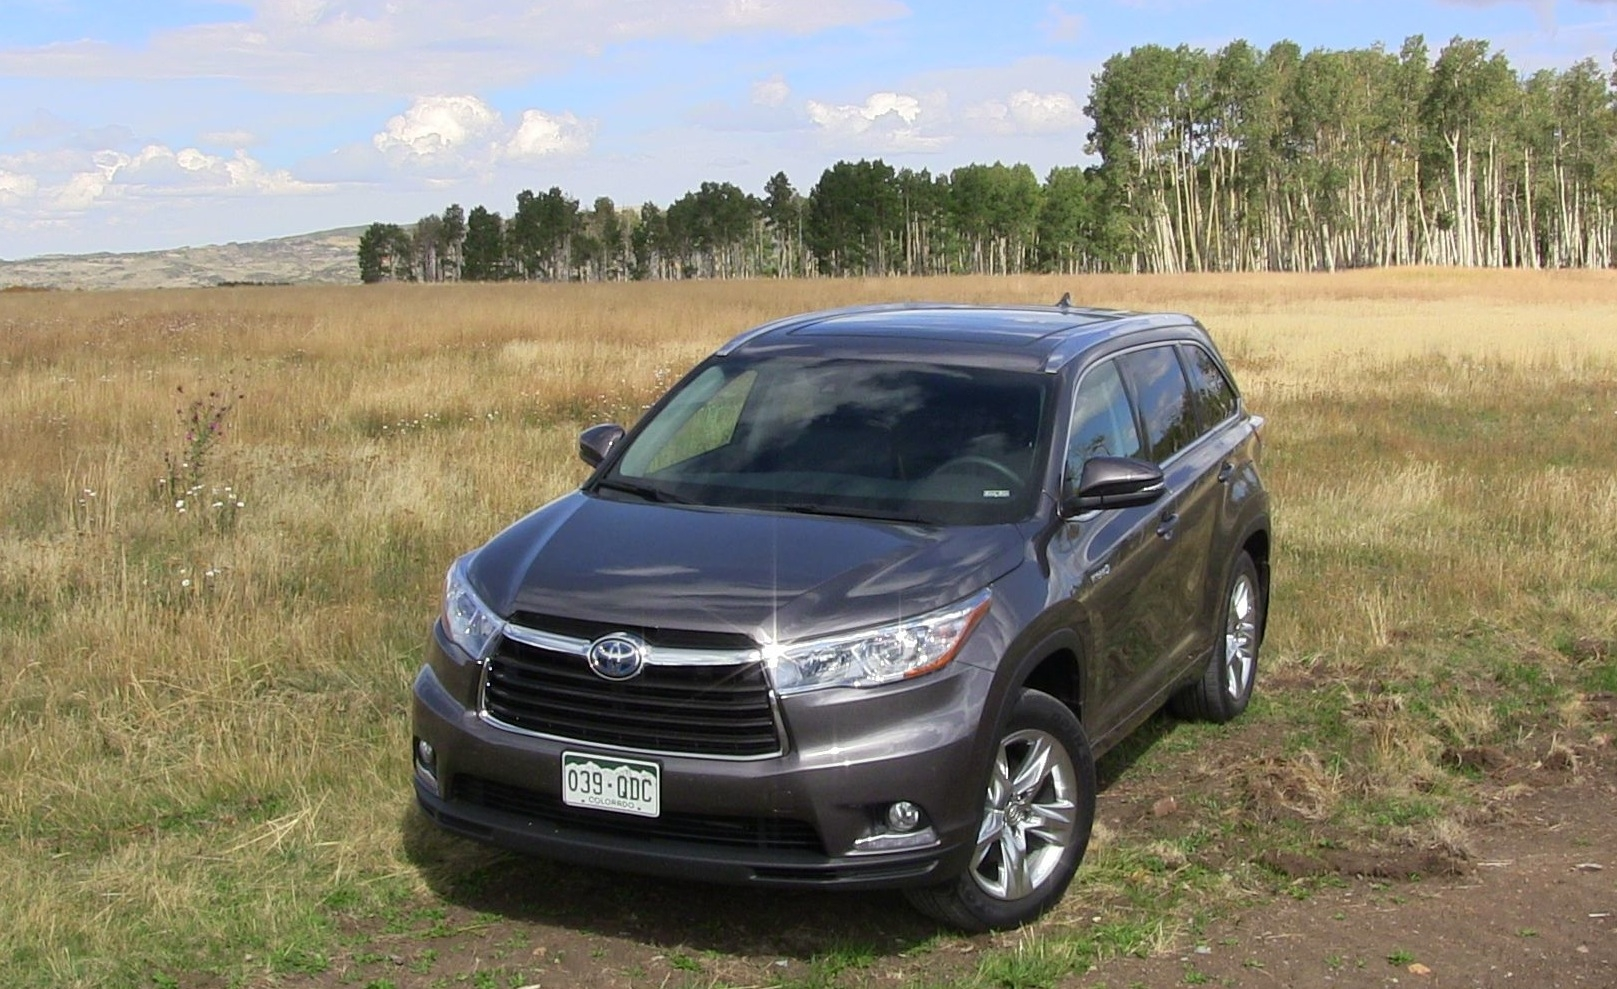 2014 toyota highlander hybrid review performance amp features toyota highlander dealer invoice